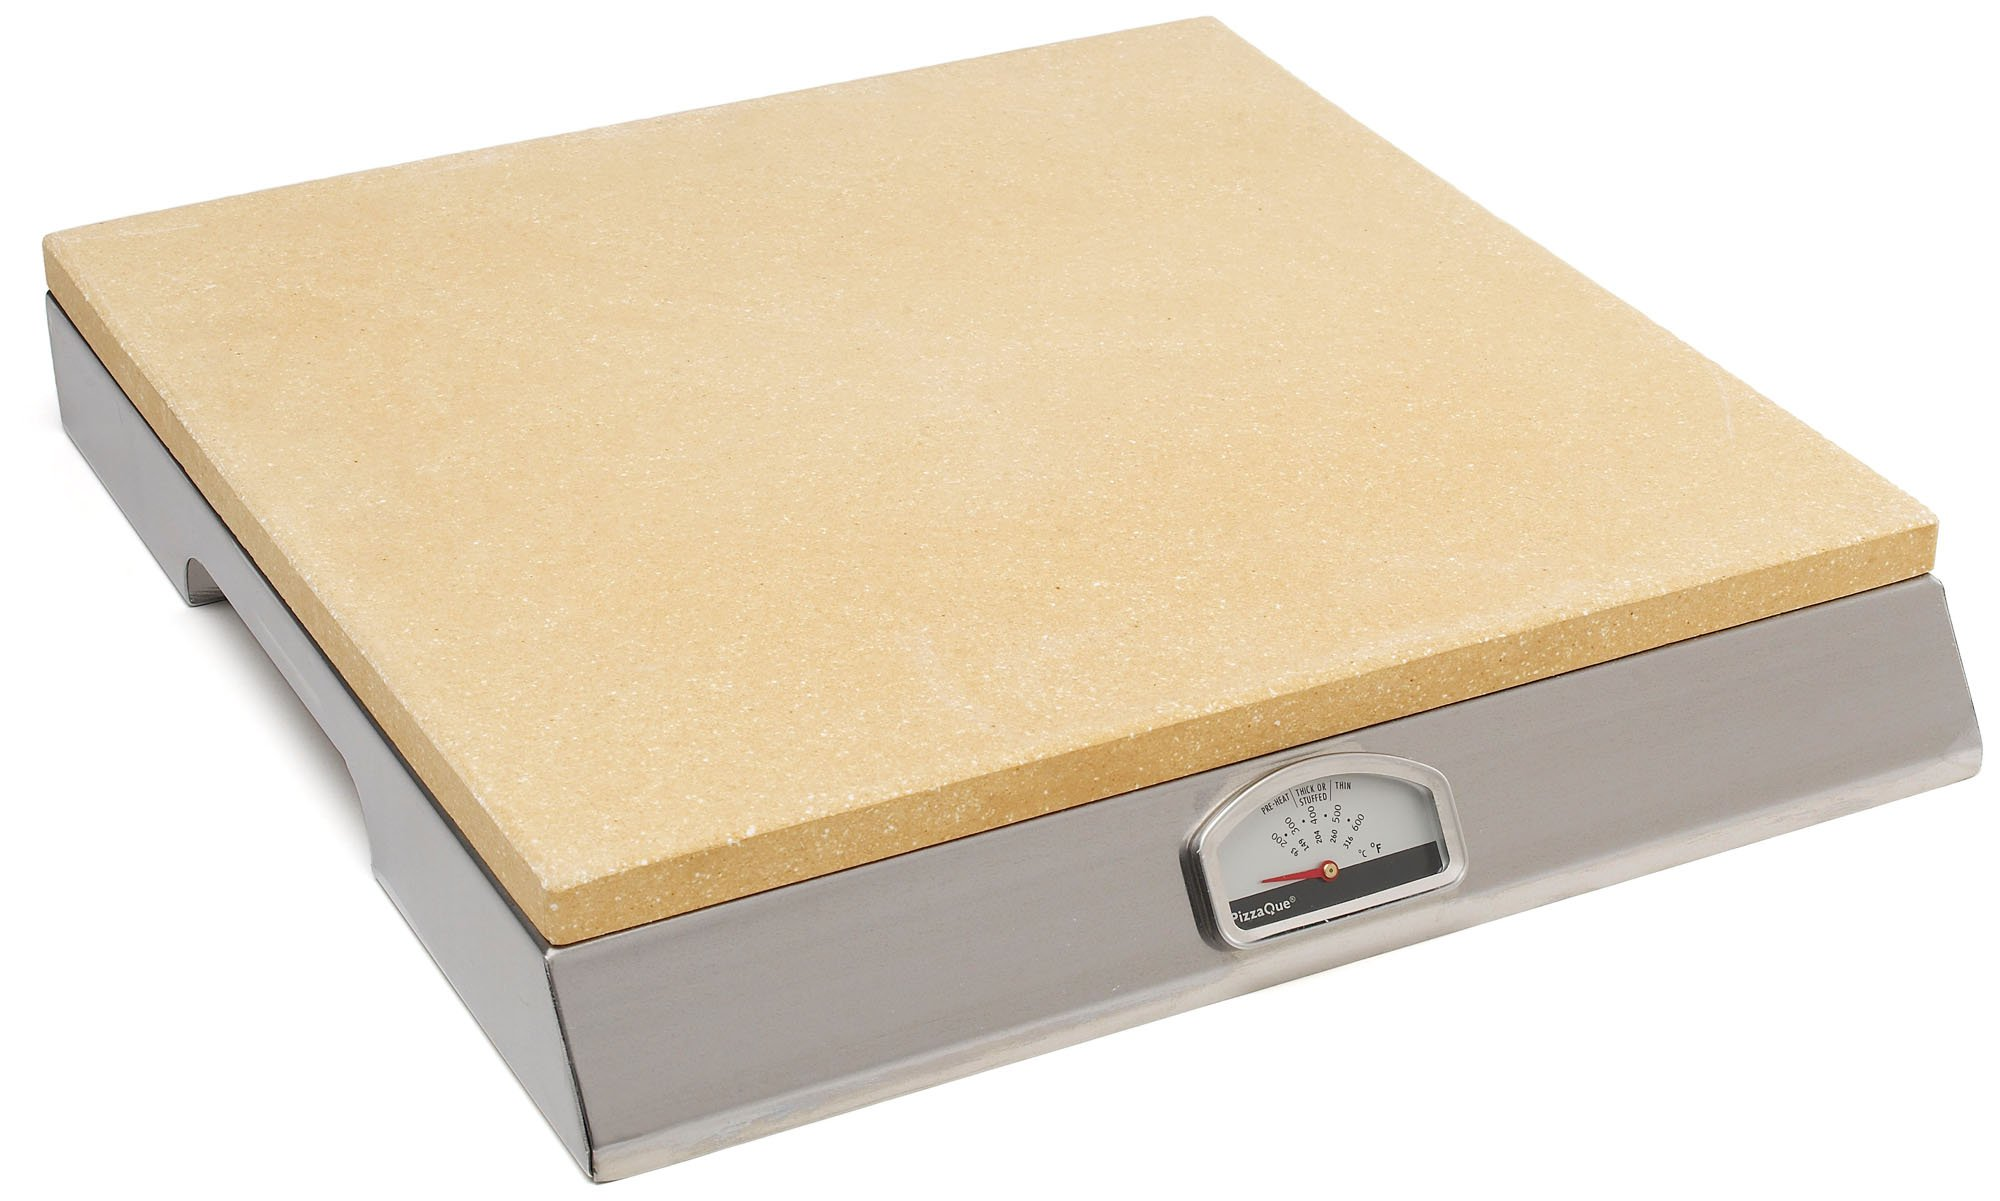 Bull 24125 PizzaQue Pizza Stone Grill by Bull